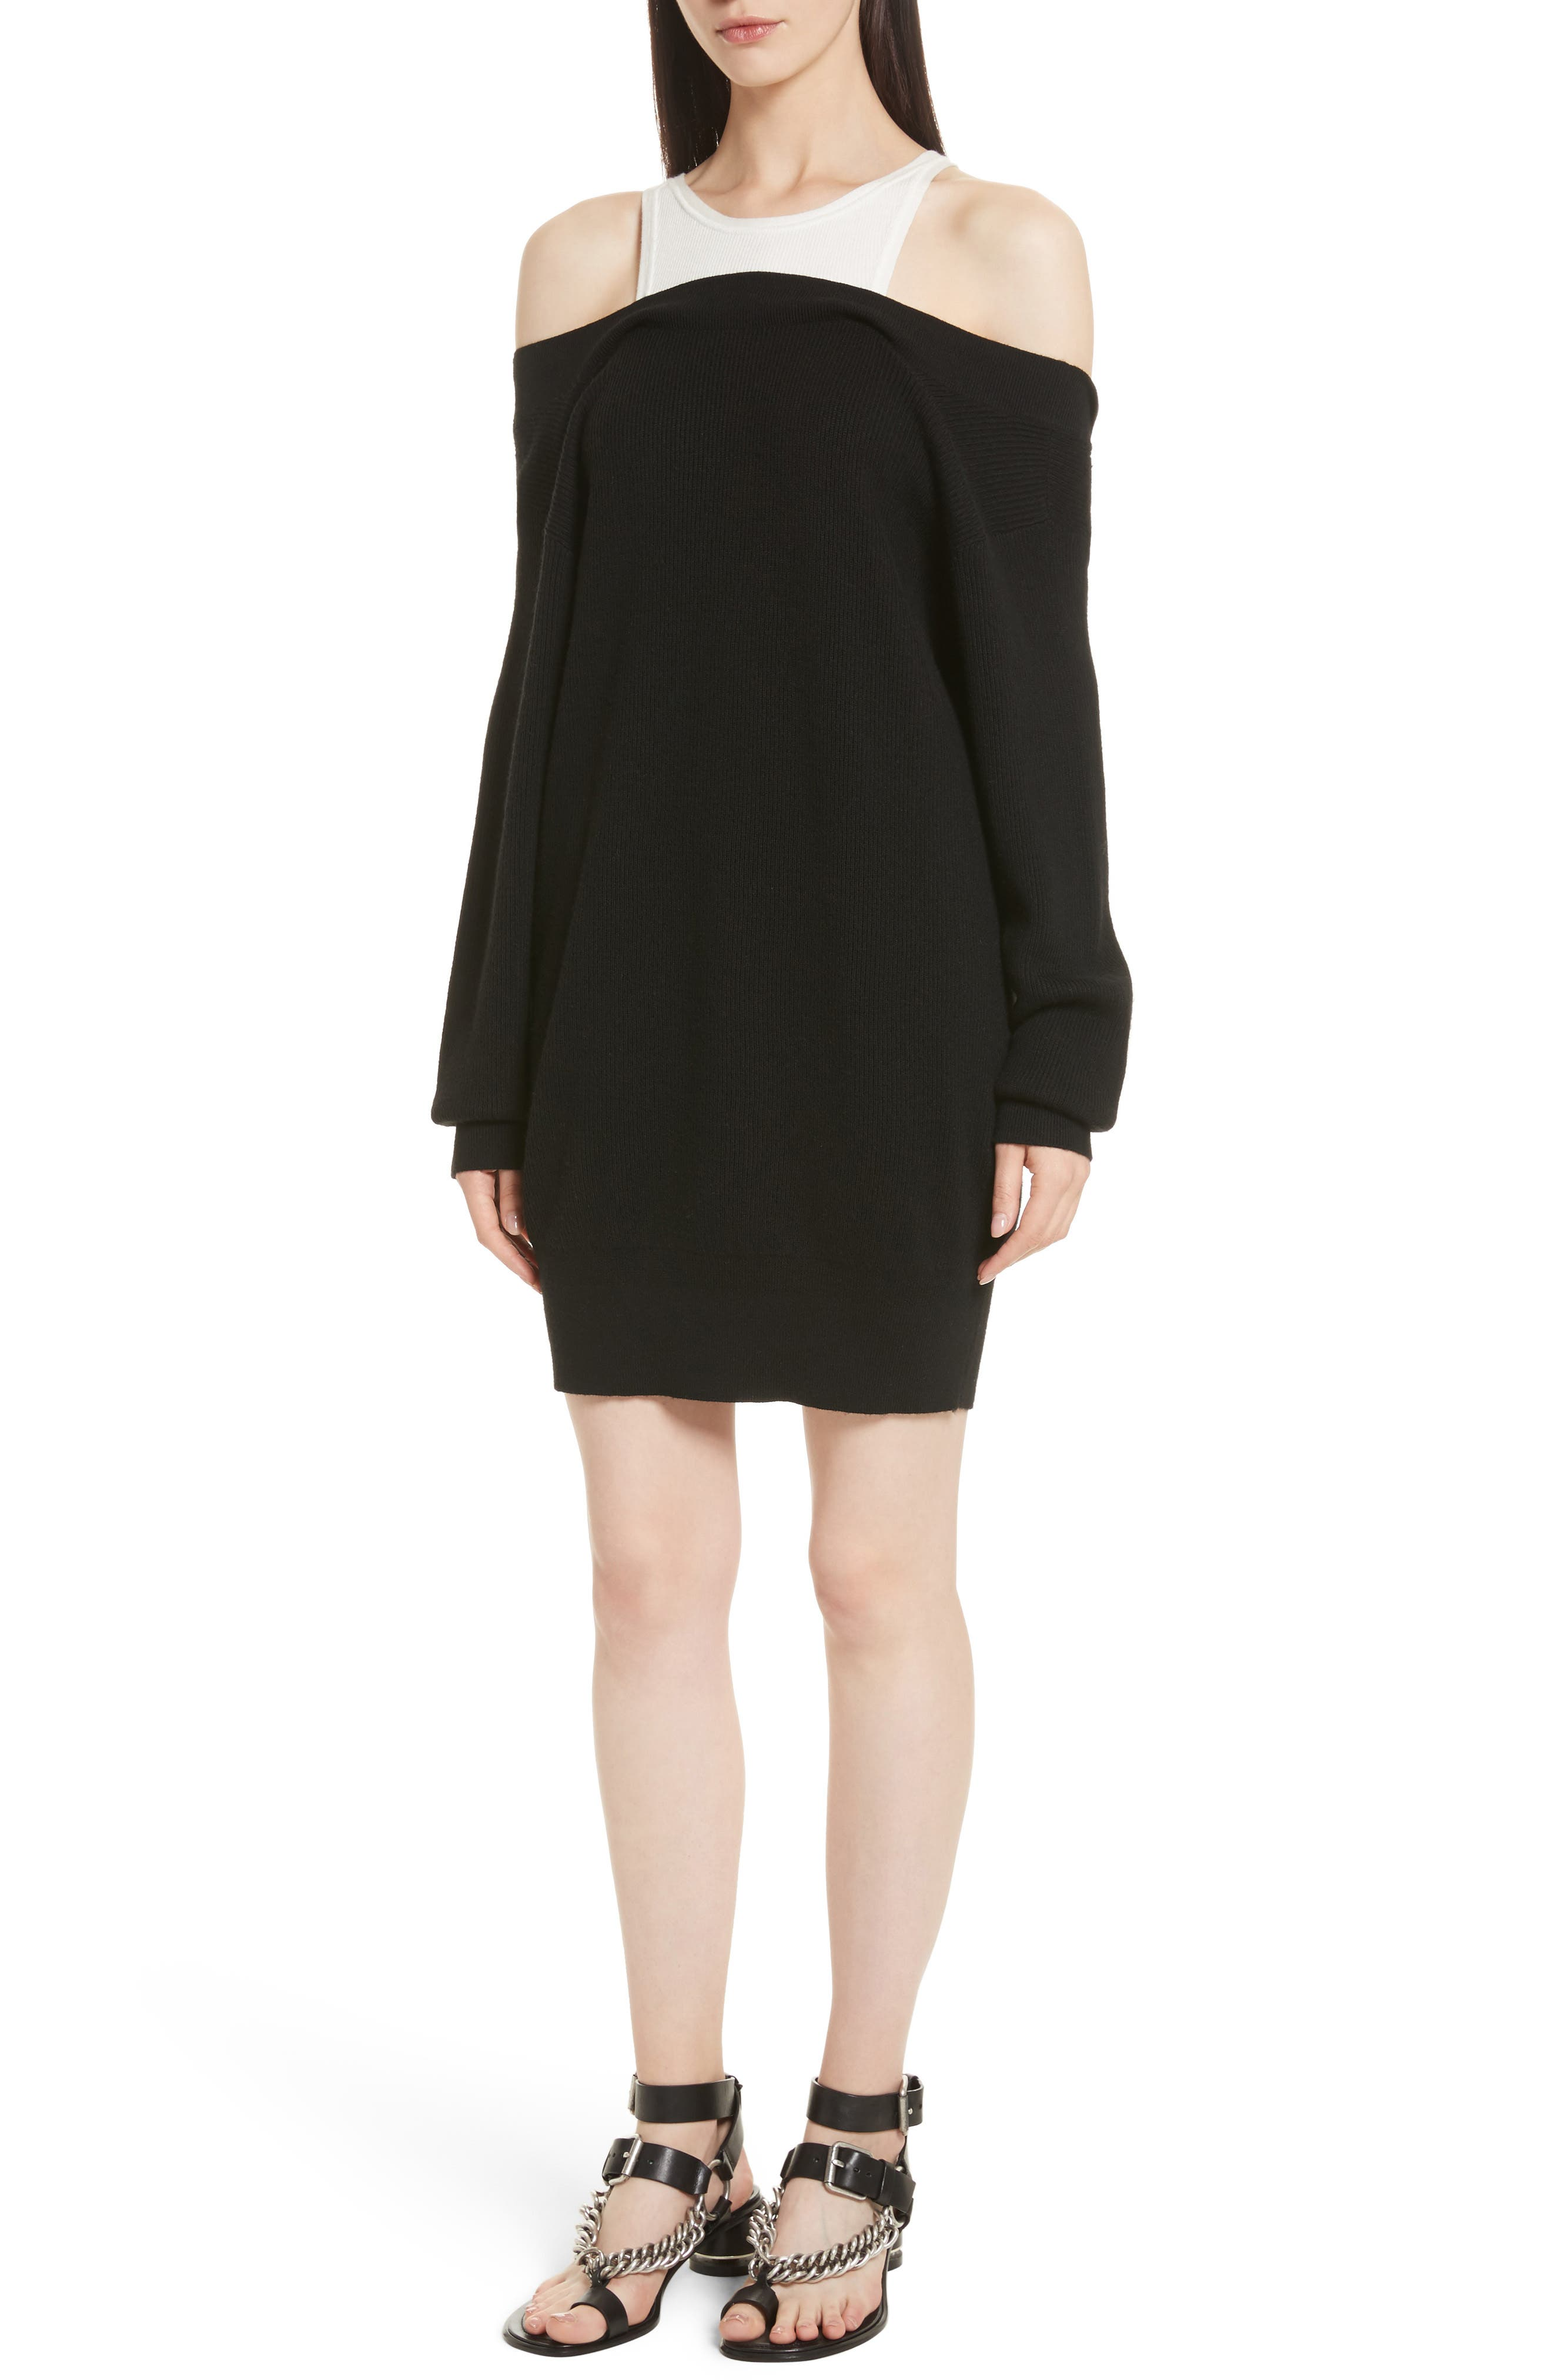 T by Alexander Wang Bi-Layer Knit Dress with Inner Tank,                         Main,                         color, 018